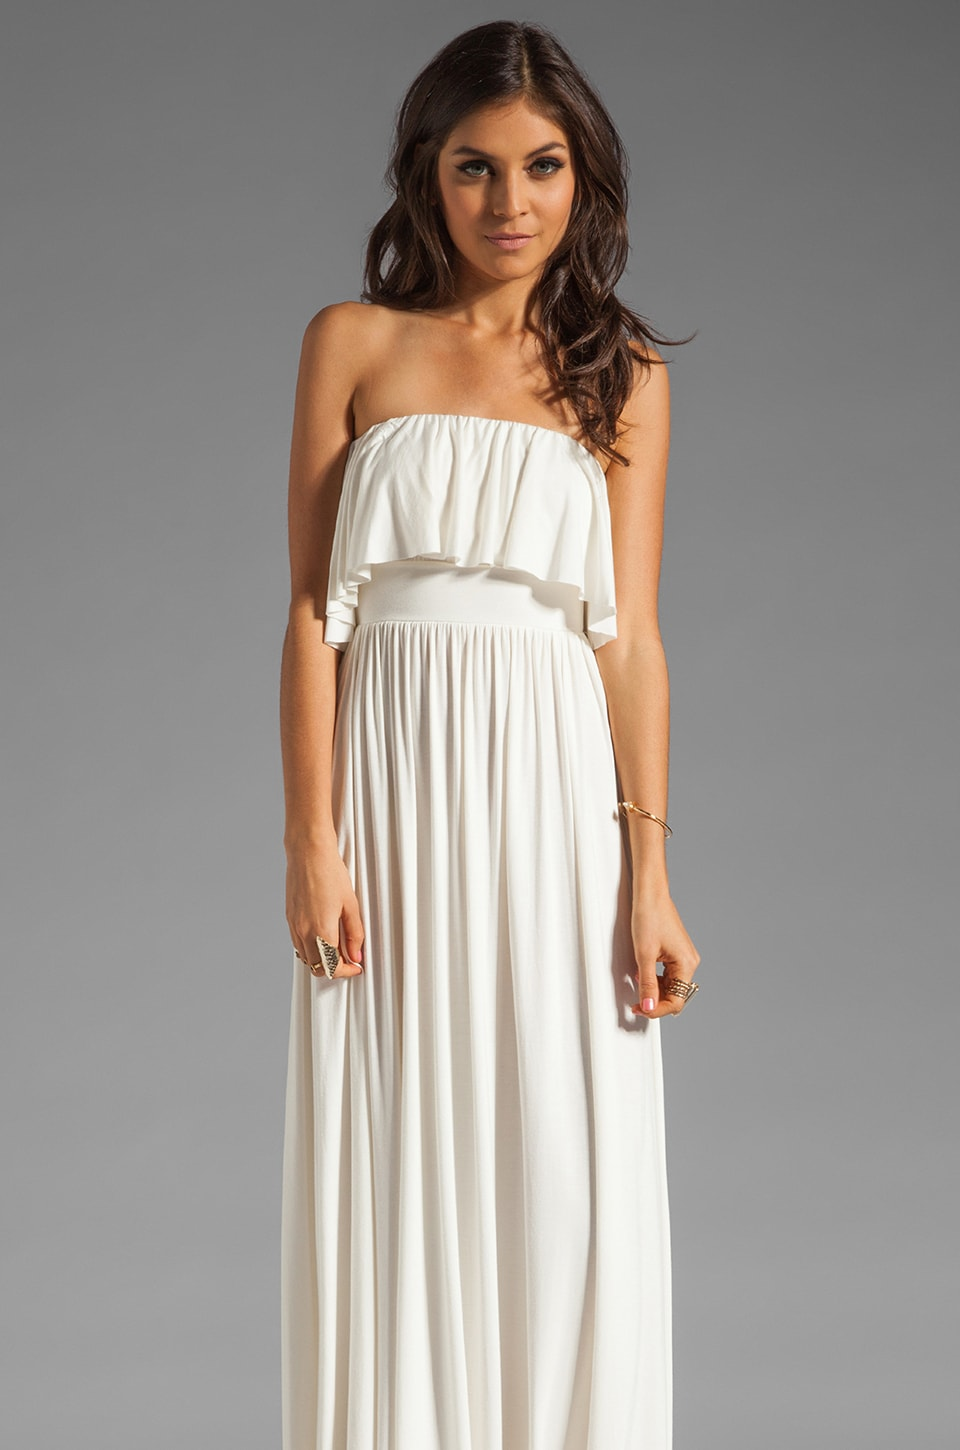 Rachel Pally Sienna Strapless Maxi Dress in White